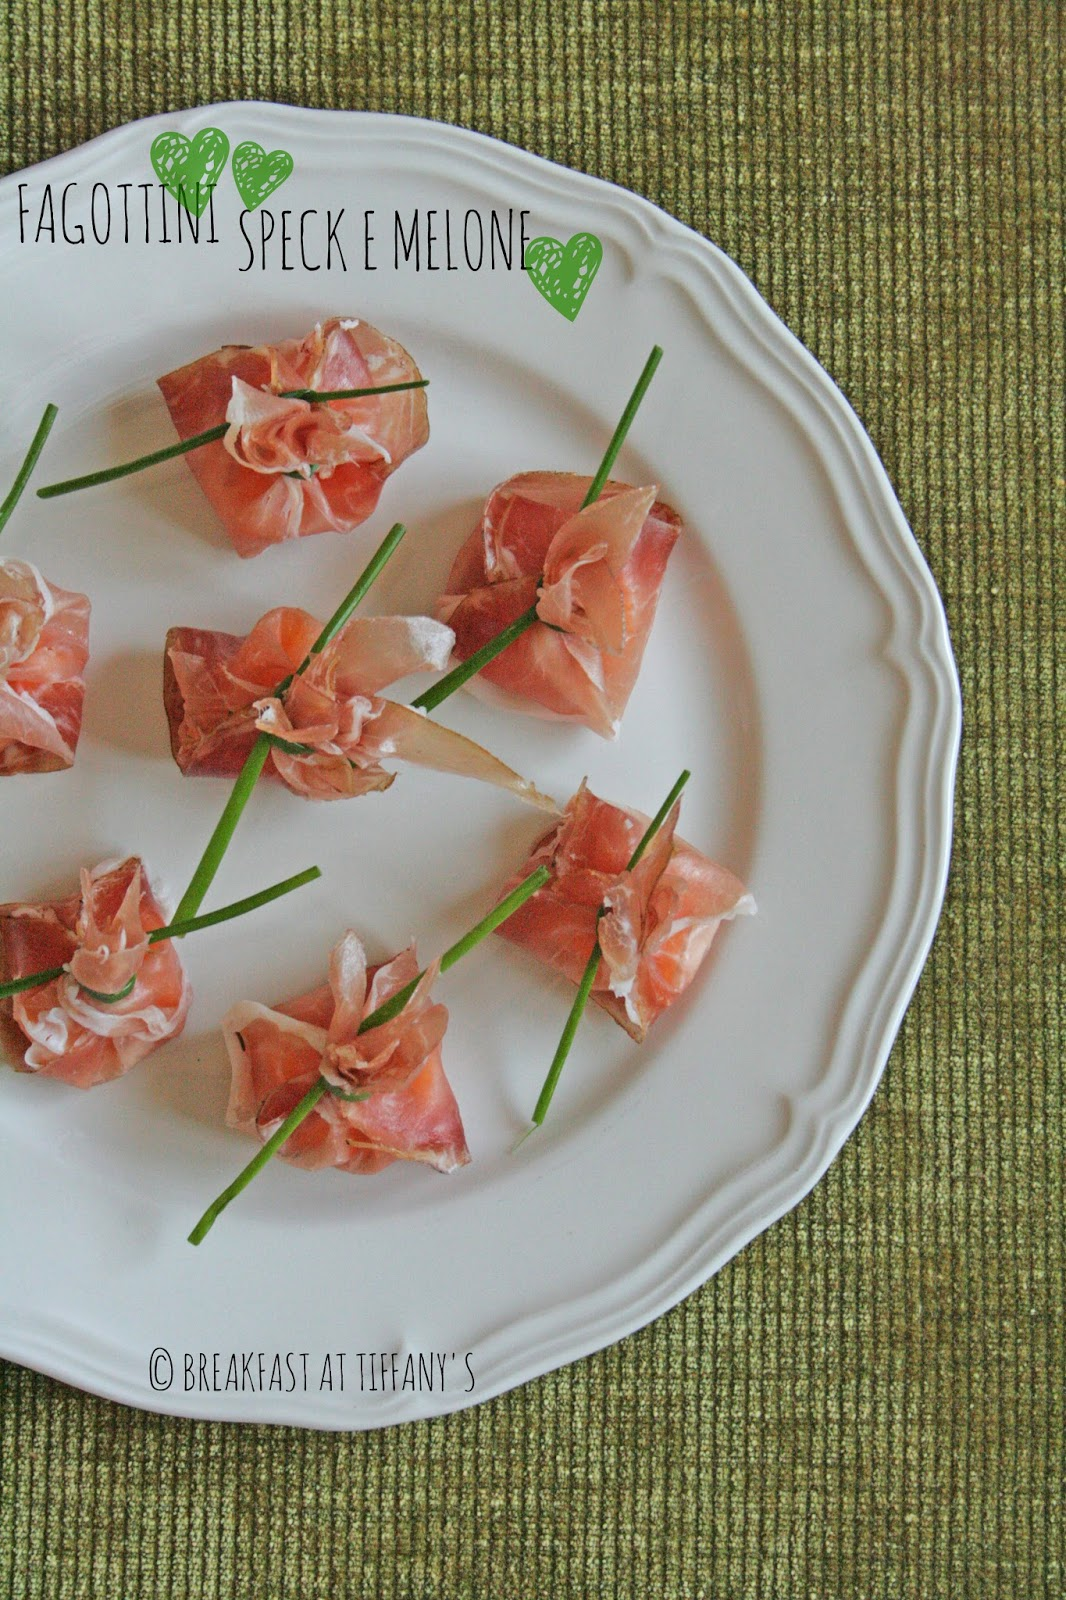 fagottini speck e melone / speck & melon turnovers recipe